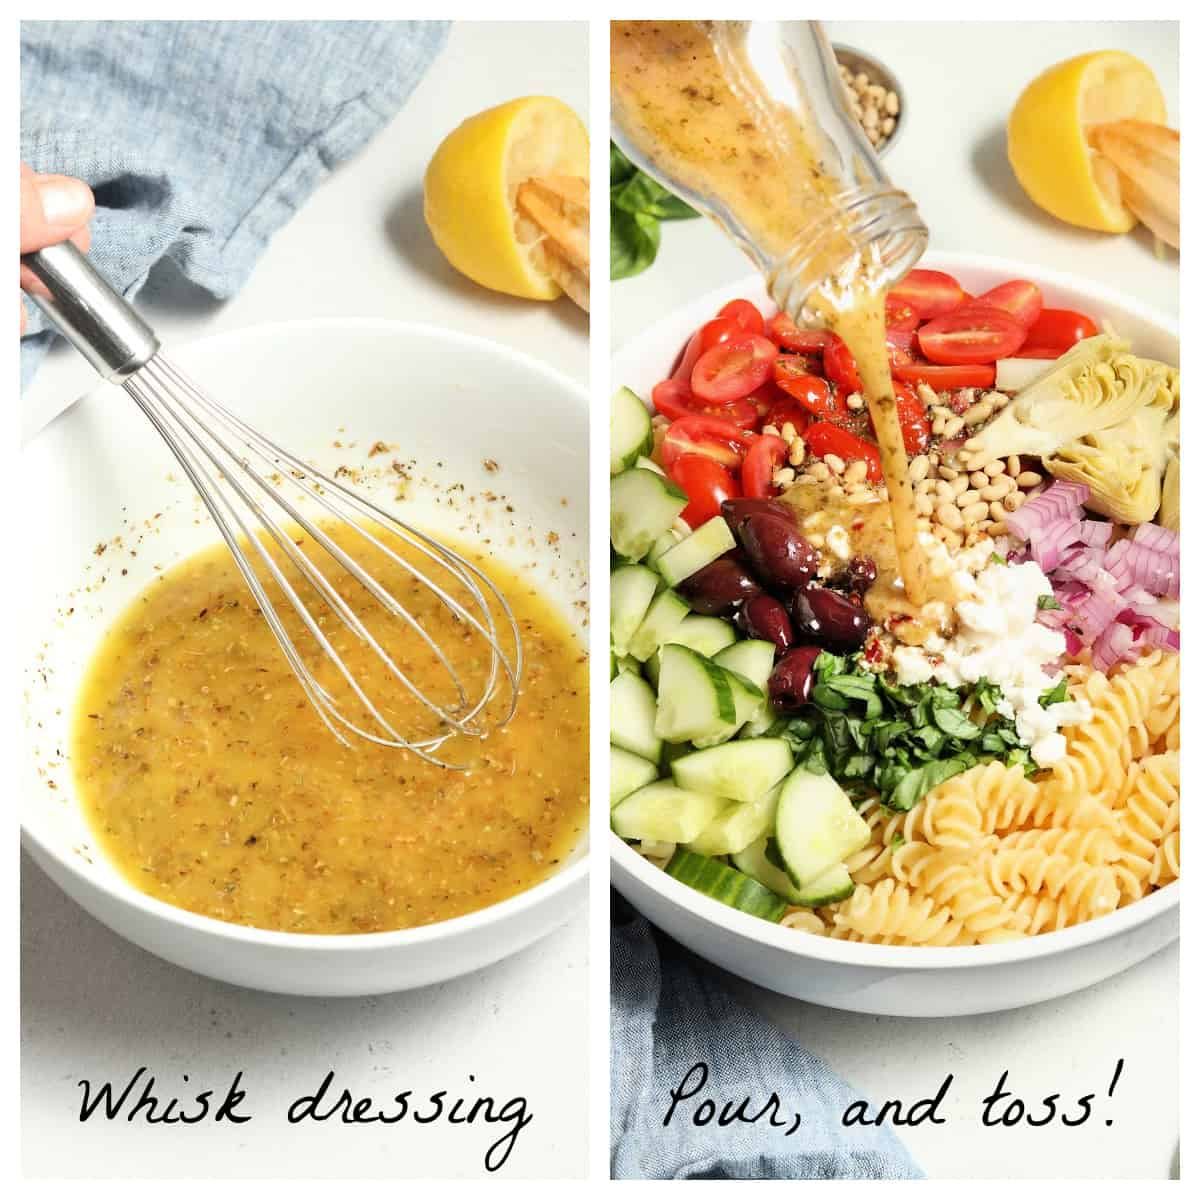 Two process photos of whisking dressing and pouring it onto the pasta and vegetables.